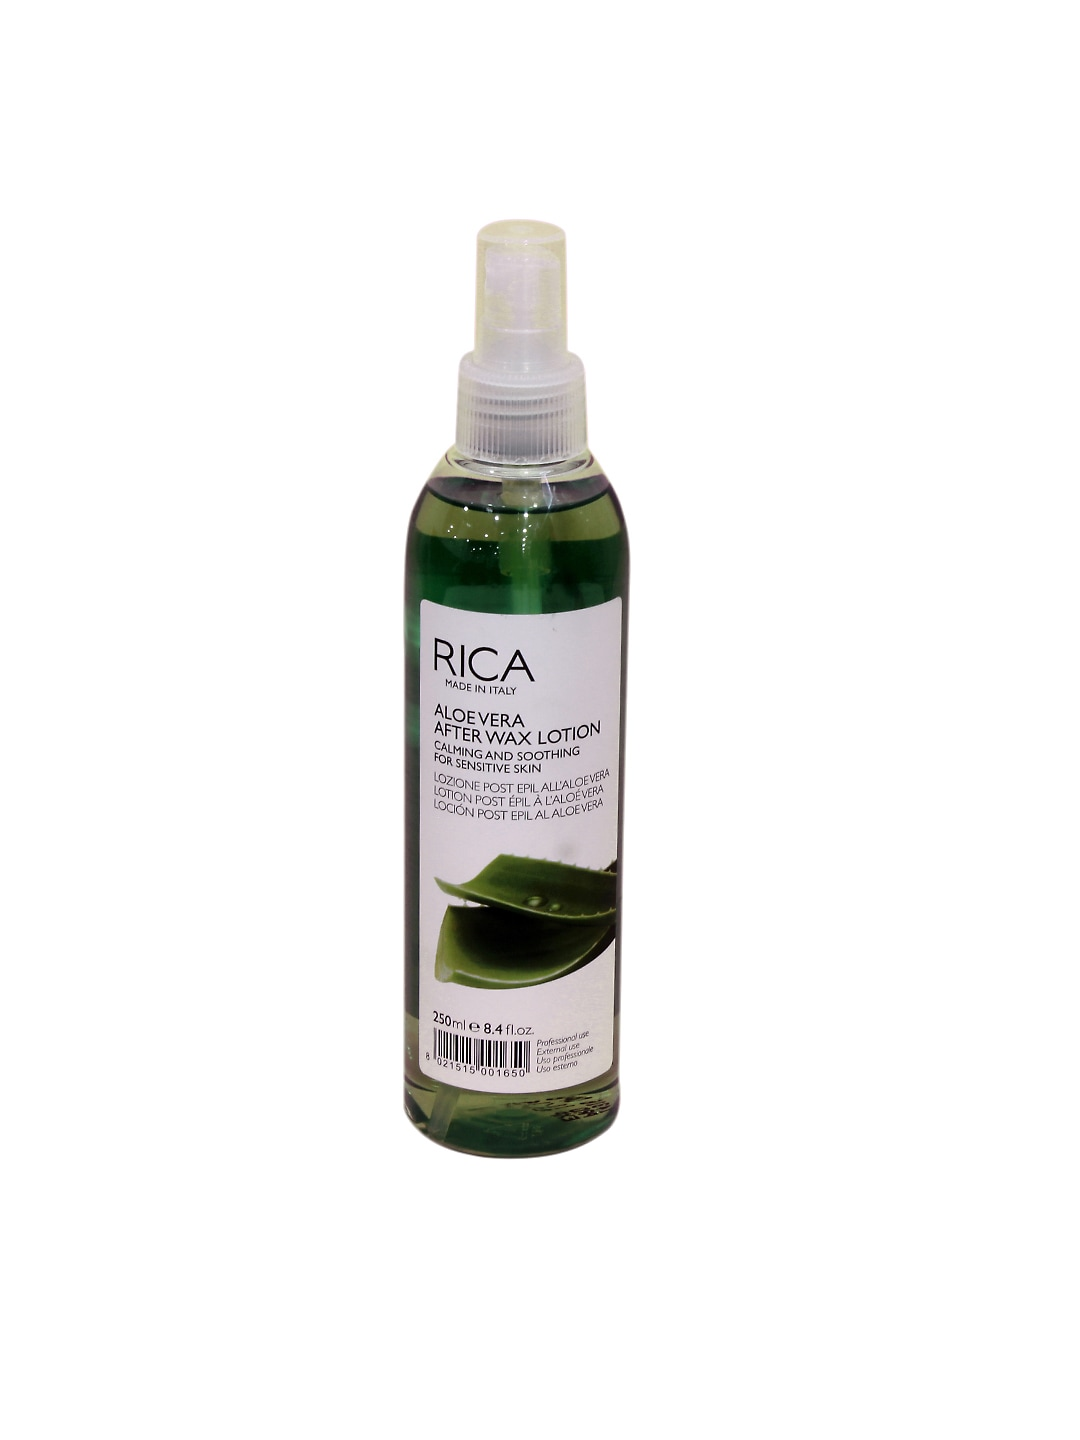 RICA Unisex Aloe Vera After Wax Lotion image